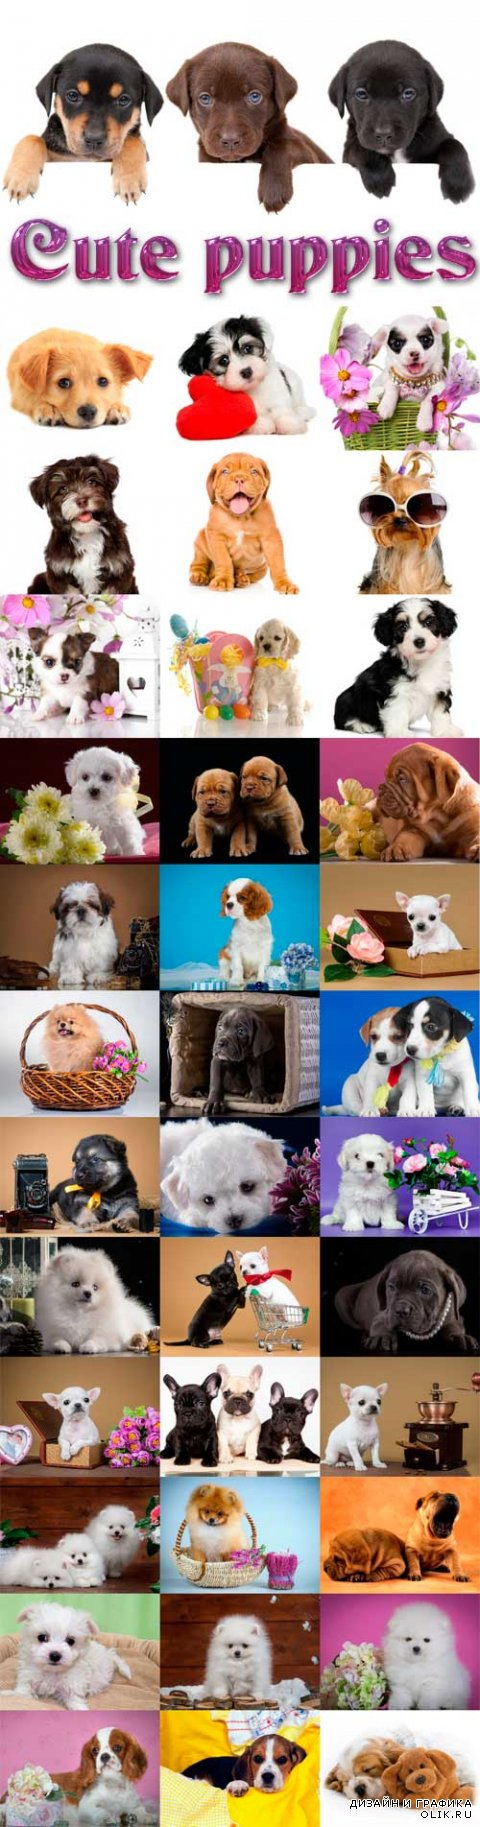 Cute puppies Raster Graphics